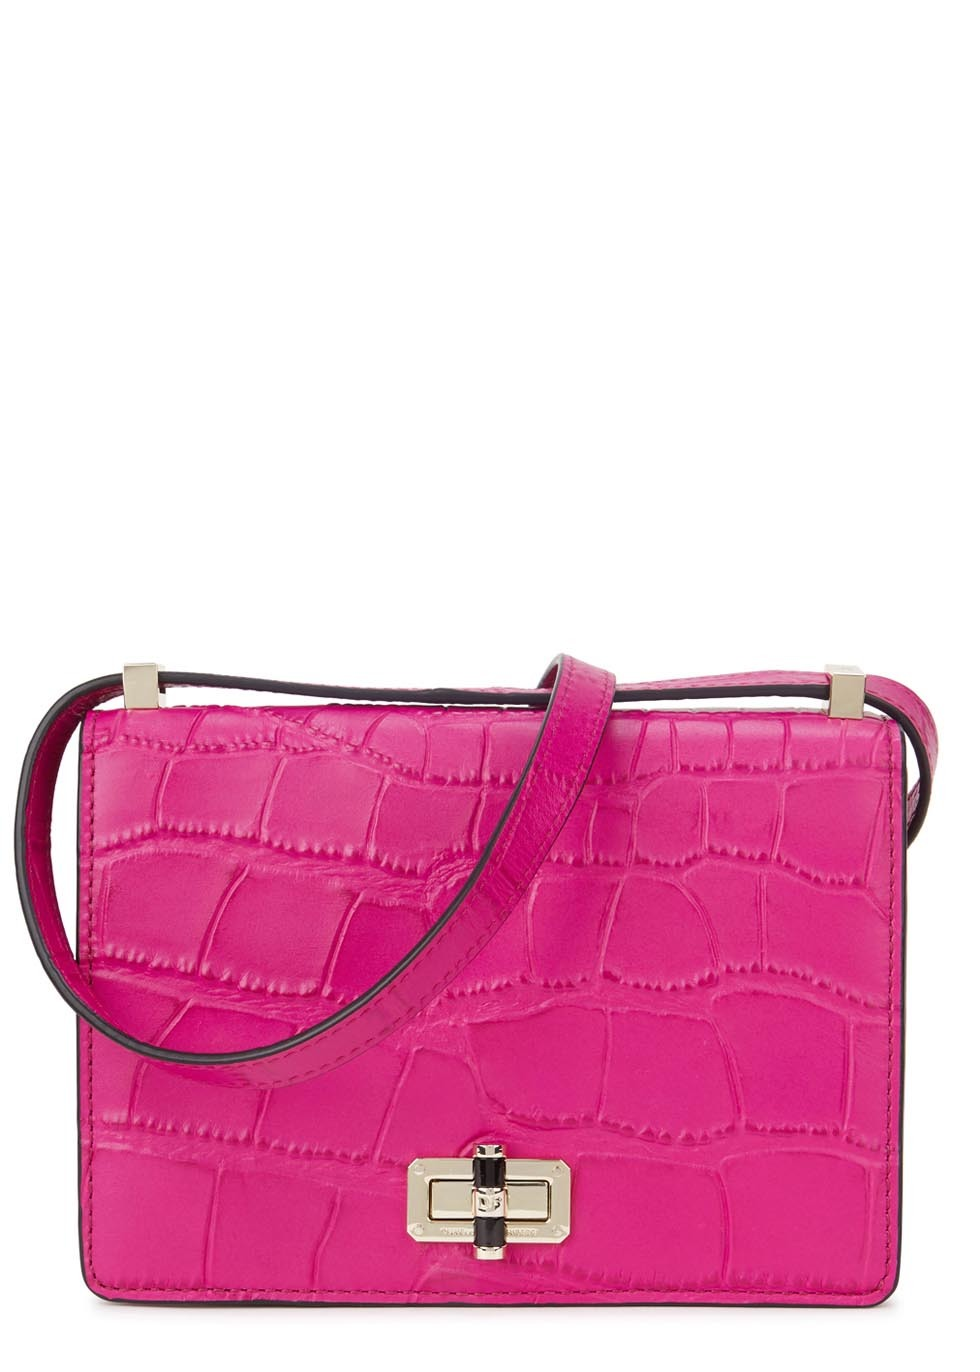 Bright Pink Crocodile Effect Leather Shoulder Bag - predominant colour: hot pink; occasions: casual, creative work; type of pattern: standard; style: shoulder; length: shoulder (tucks under arm); size: standard; material: leather; pattern: animal print; finish: plain; season: s/s 2016; wardrobe: highlight